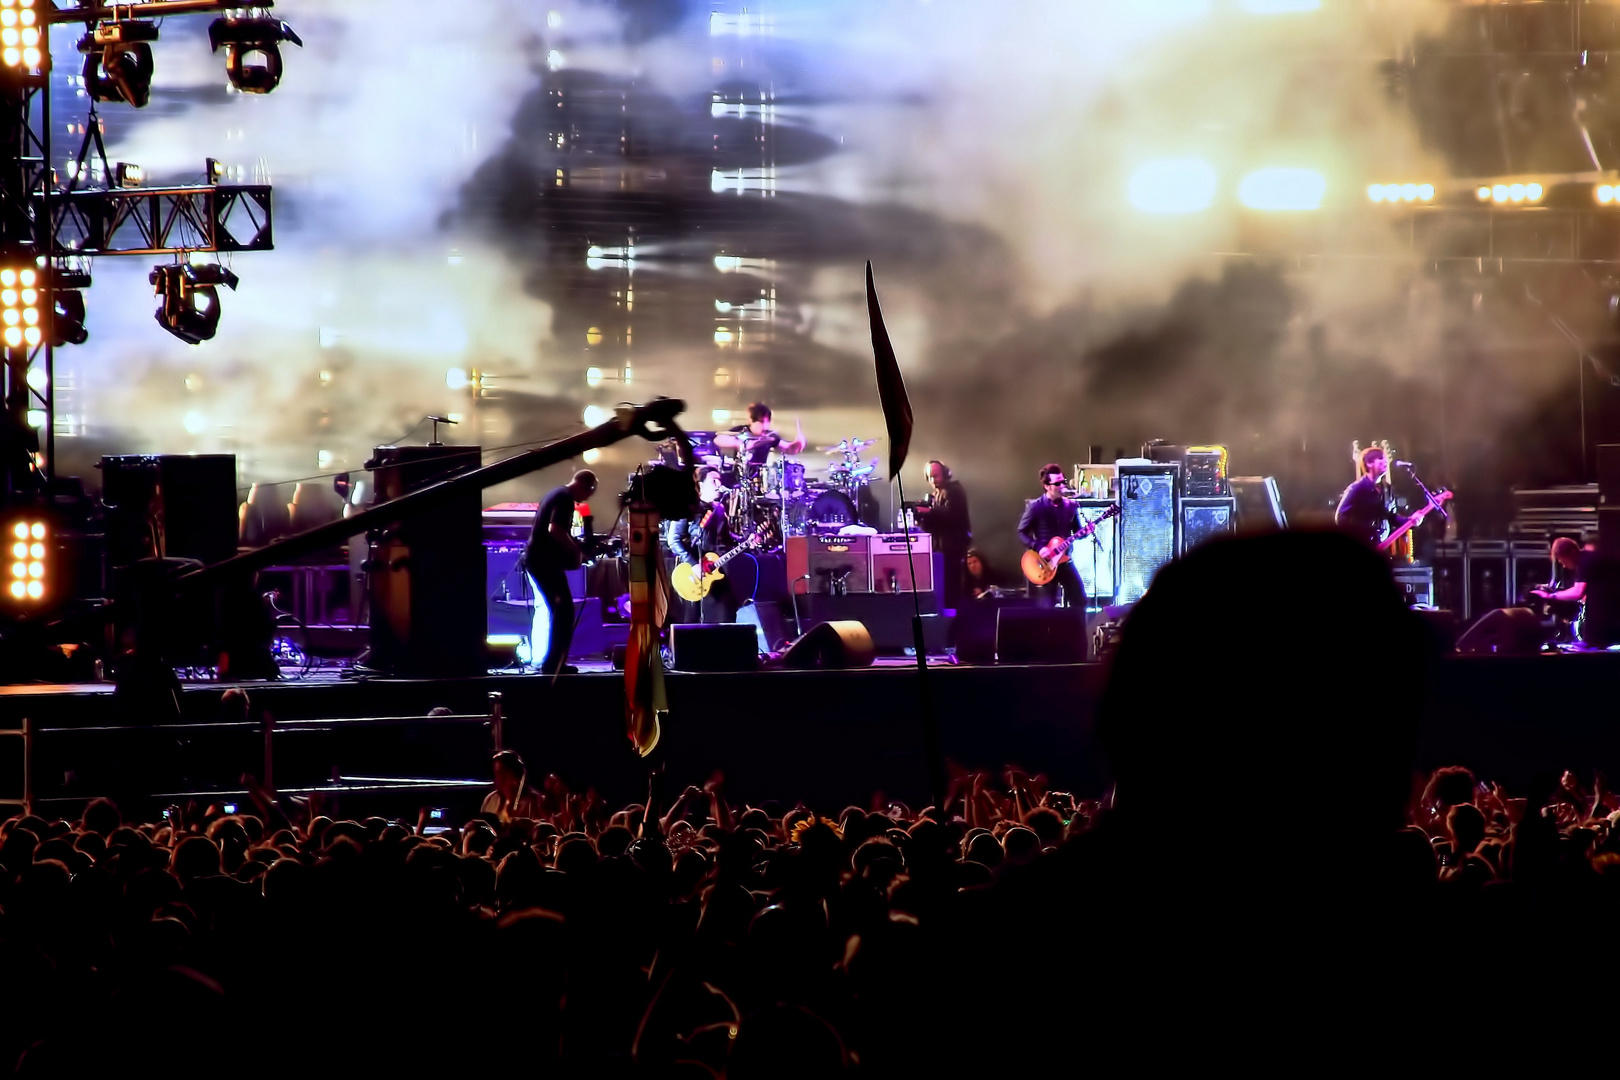 Stereophonics at the Isle of Wight Festival